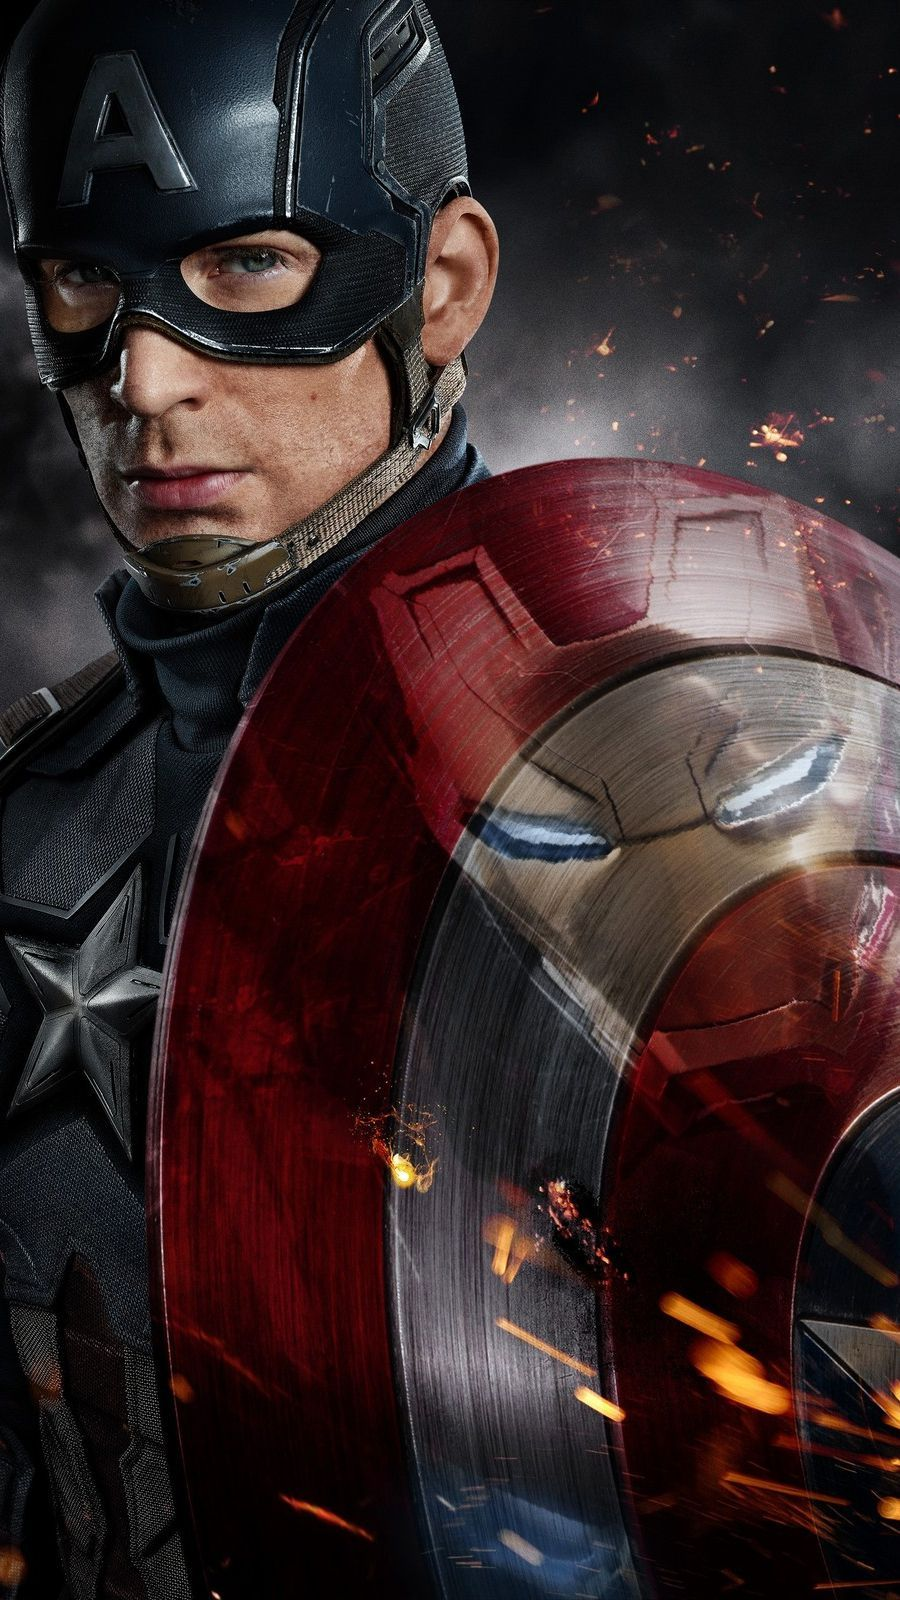 Captain America Vs Iron Man Fight Wallpaper Captain America